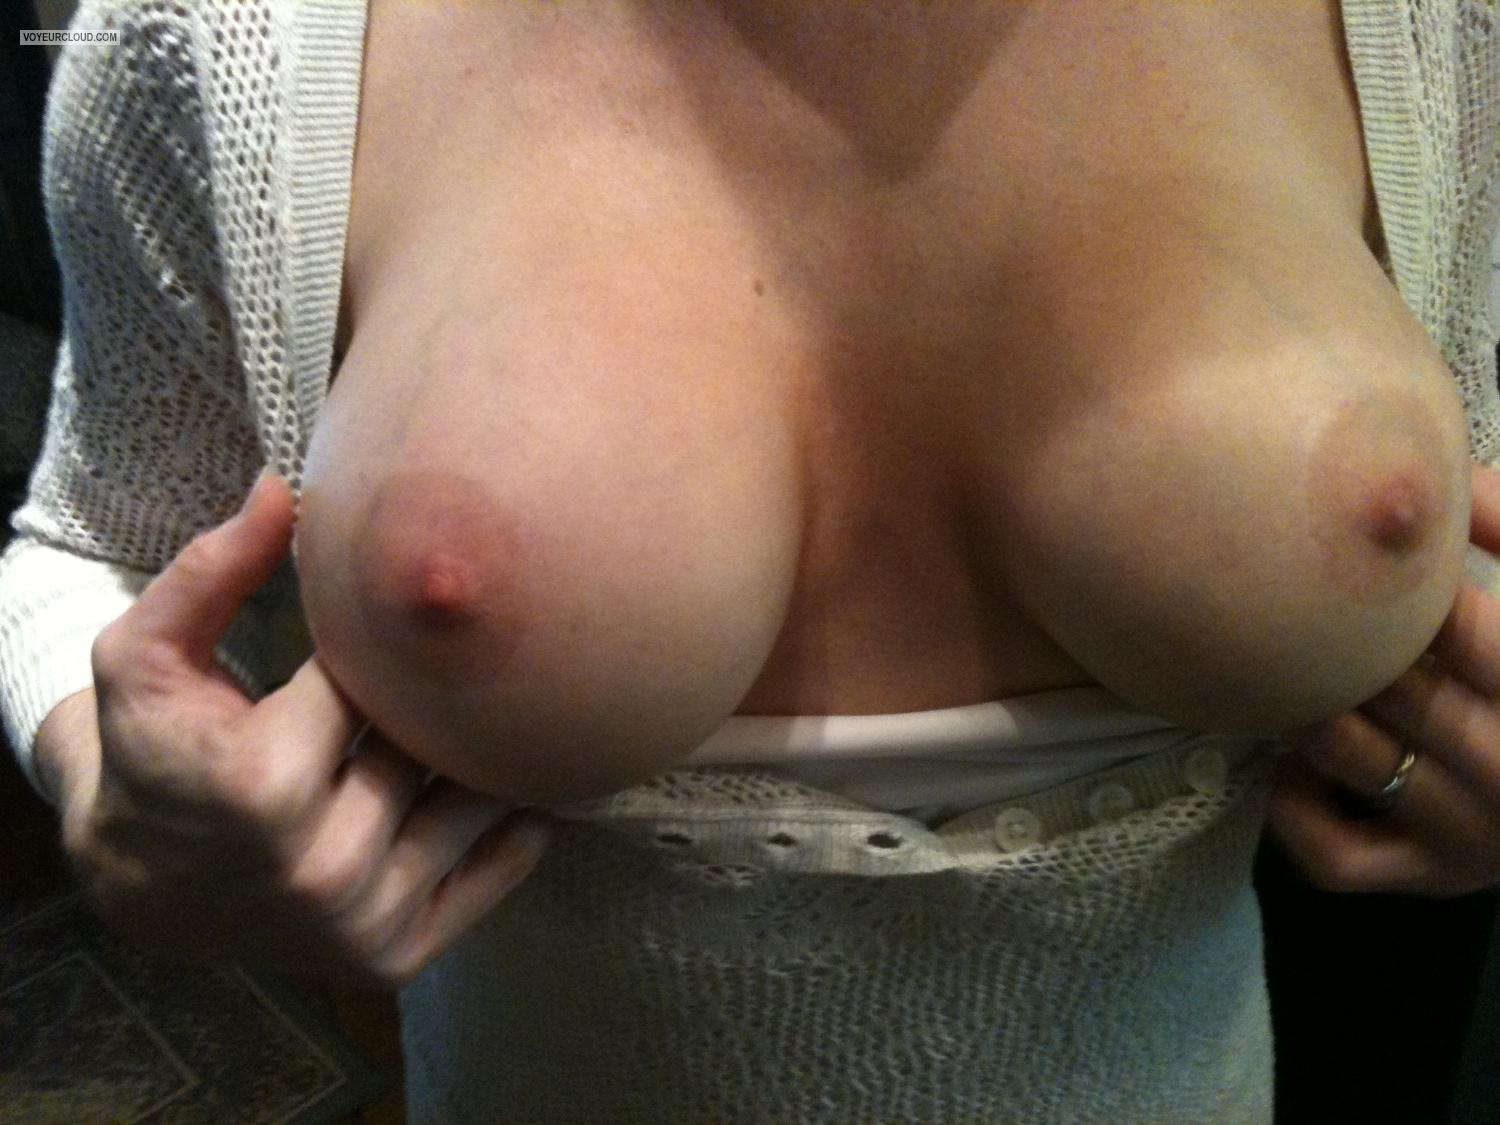 Tit Flash: Medium Tits By IPhone - Kat from United States